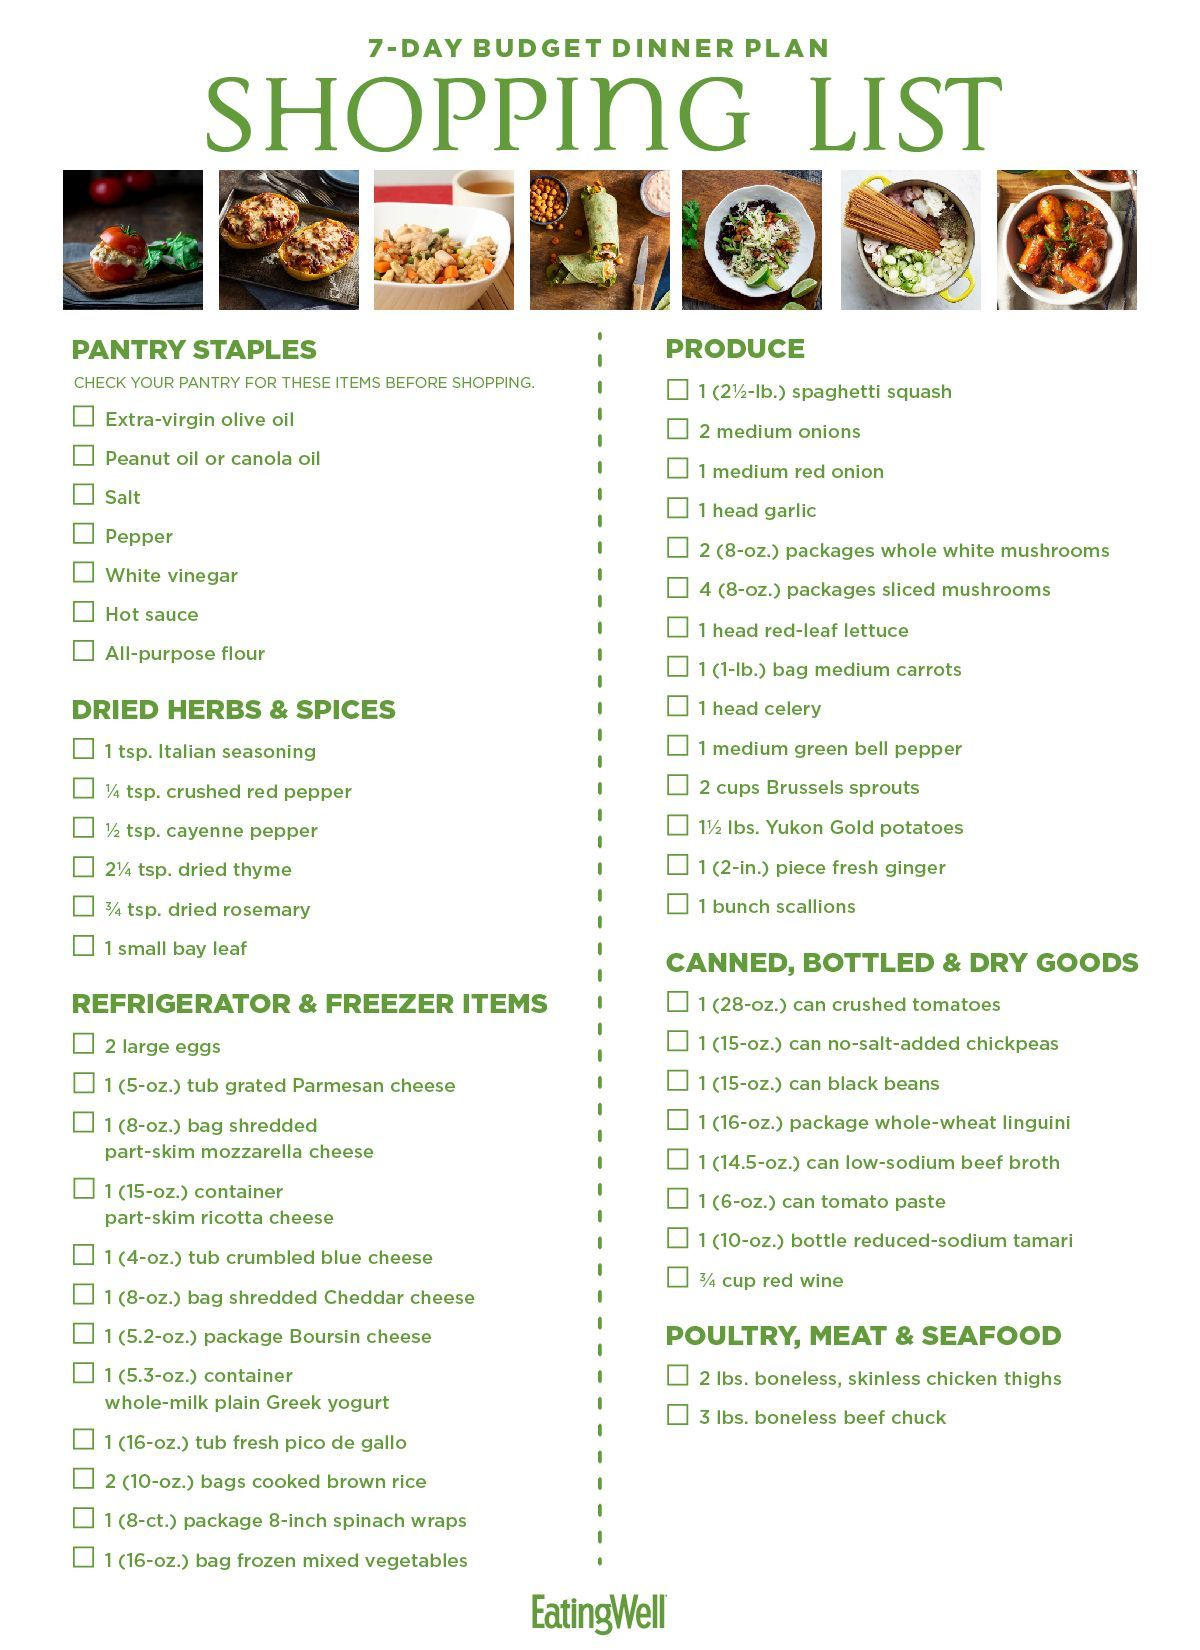 7-Day budget meal plan & shopping list - eatingwell images